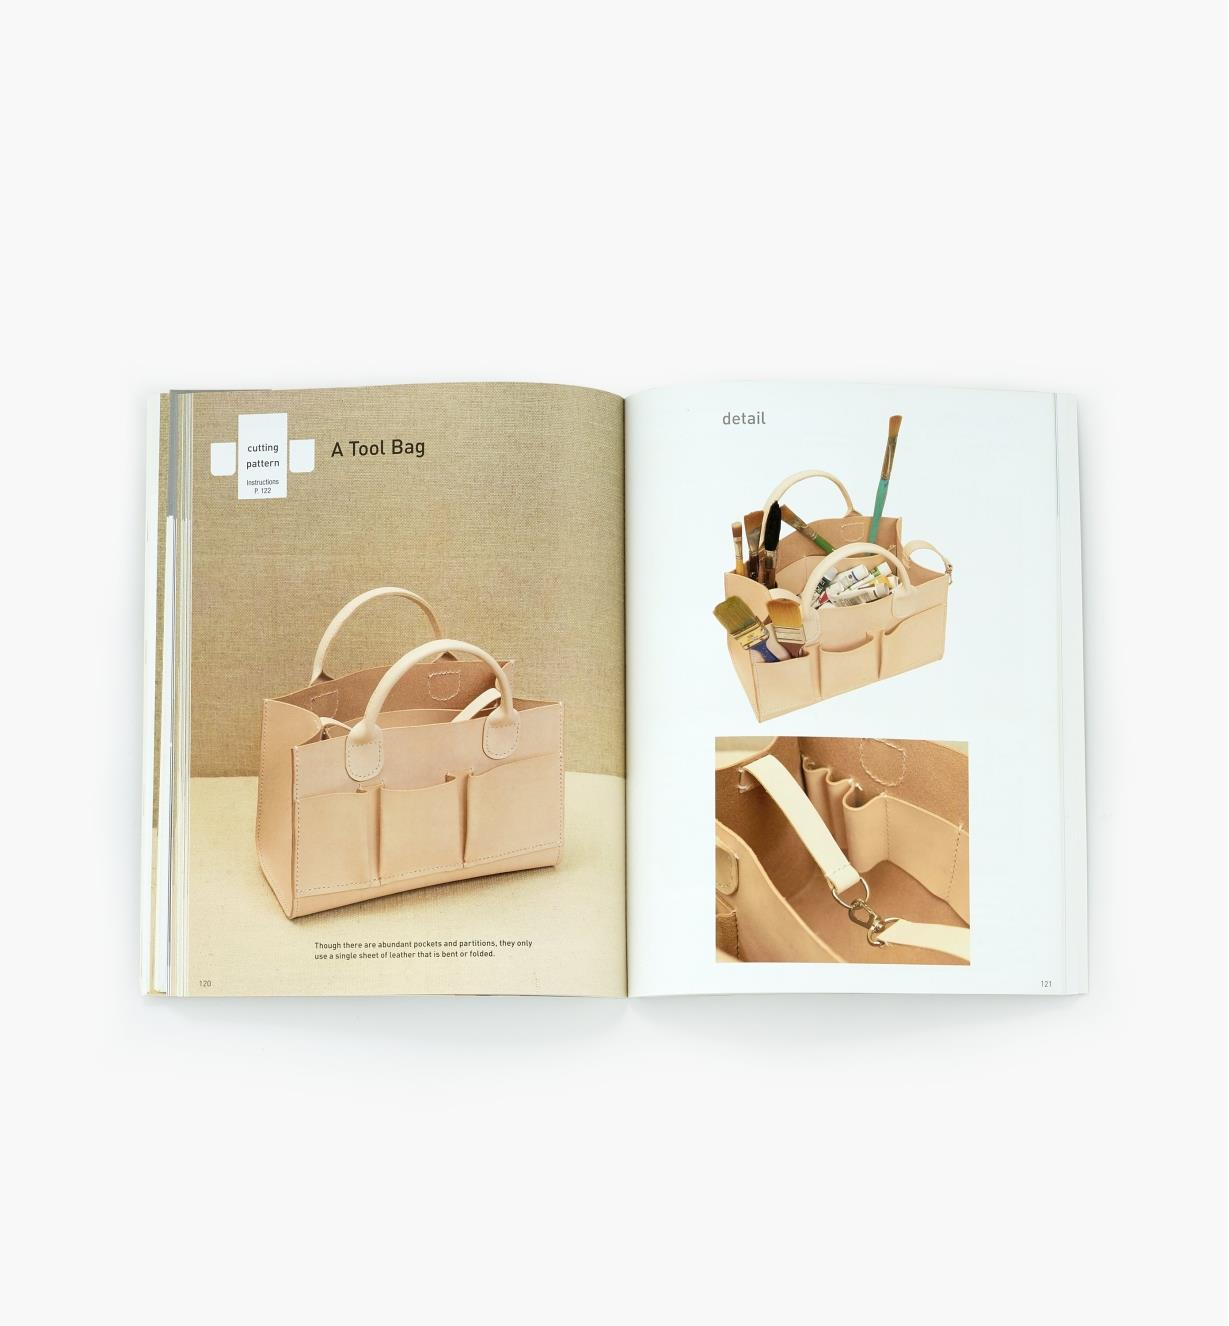 Two-page spread in Tanned Leather Hand-Made Bags showing a completed tool bag project and a detail of straps sewn inside the bag's gussets